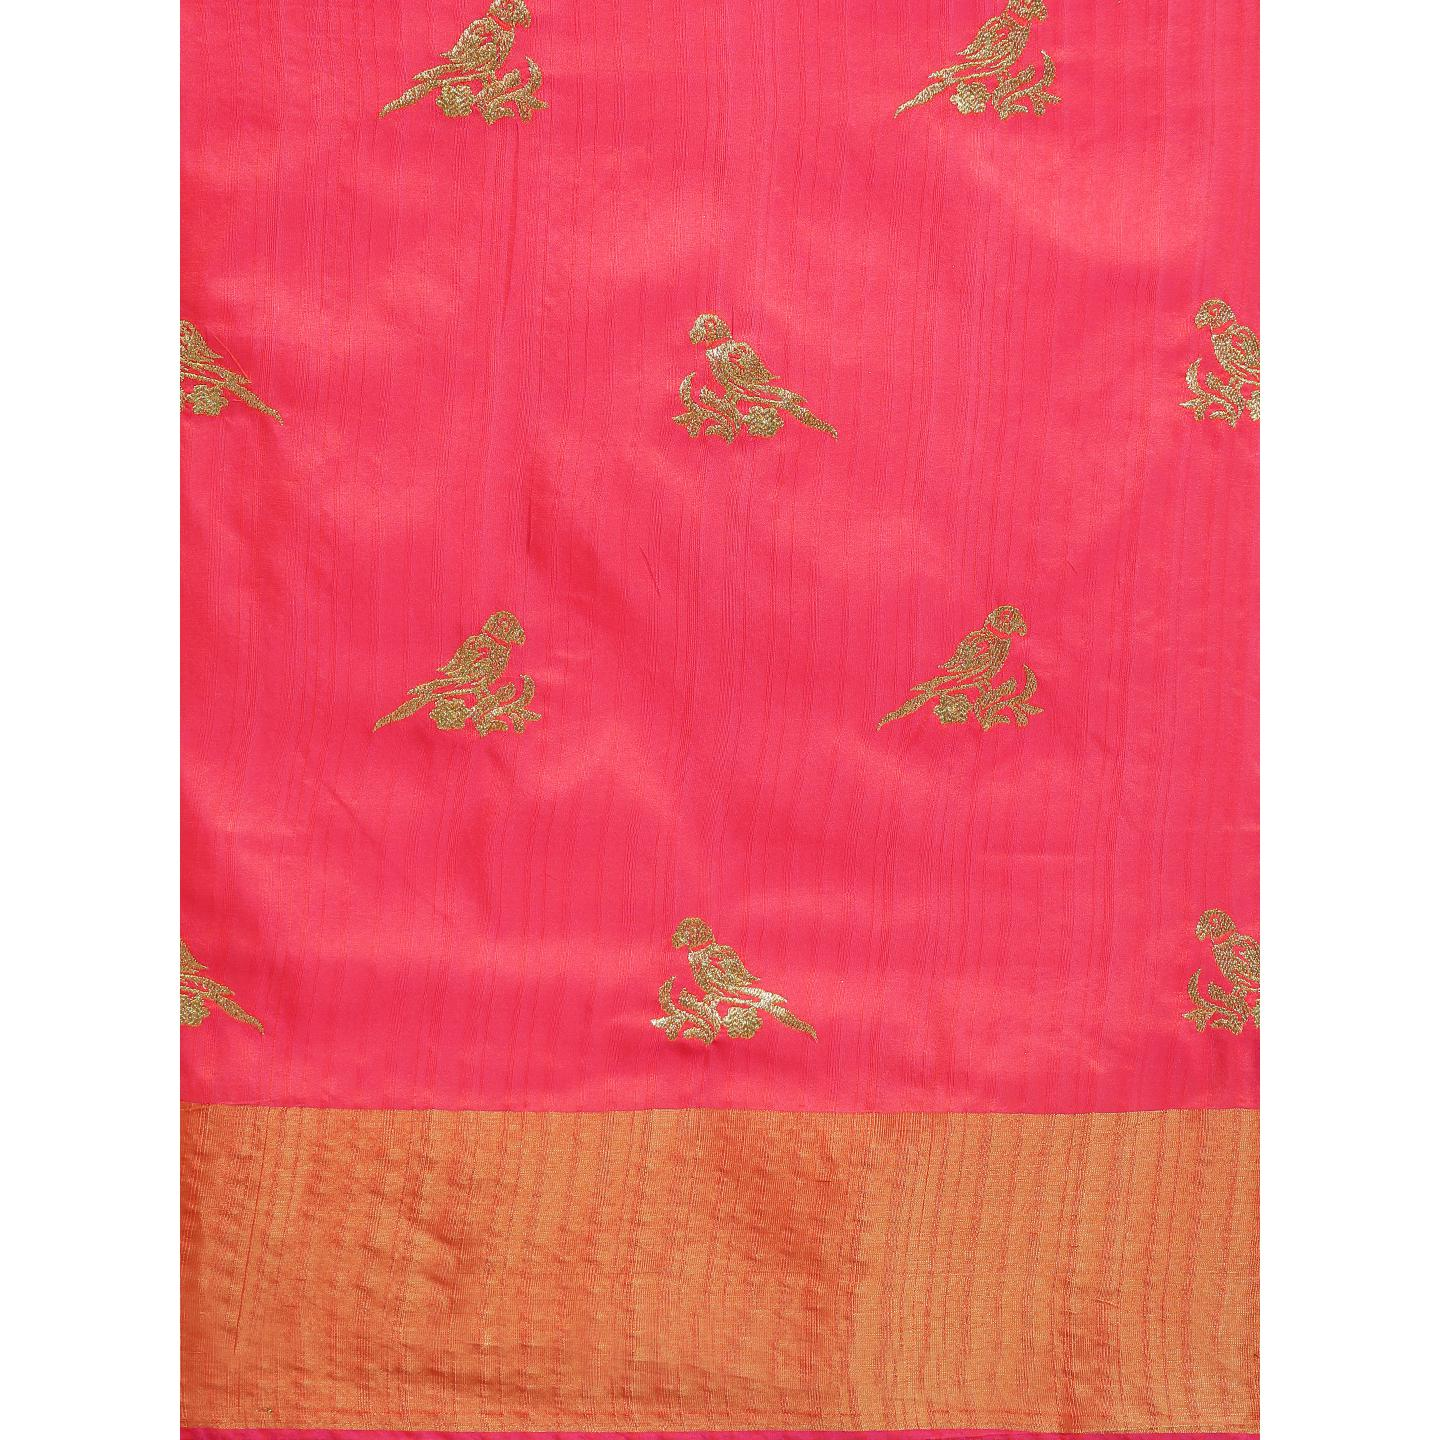 Pache - Pink Colored Partywear Embroidered Cotton Art Silk Saree With Tassels